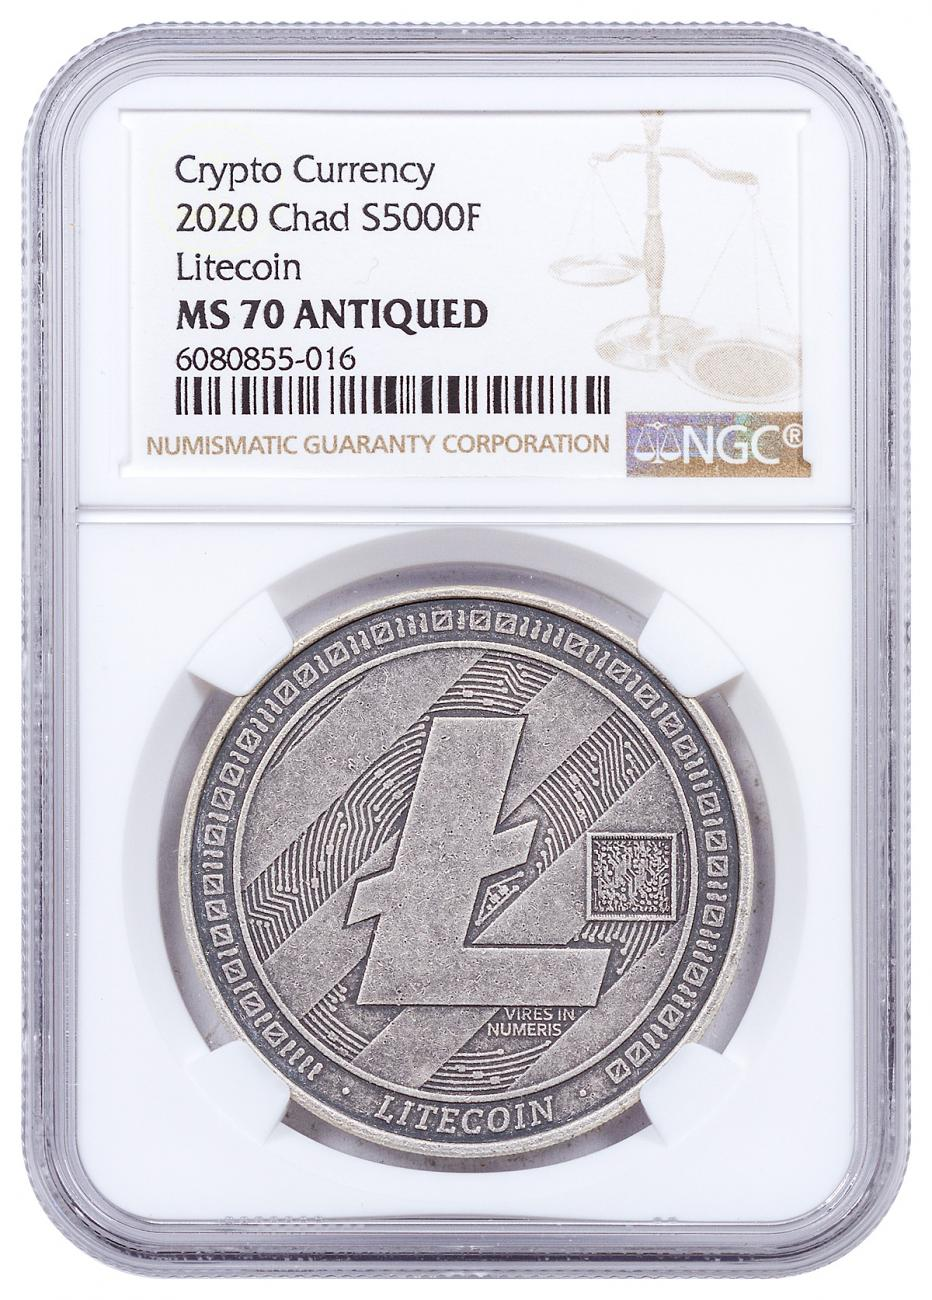 2020 Republic of Chad Fr5,000 1 oz Silver Litecoin Crypto Currency Antiqued Coin NGC MS70